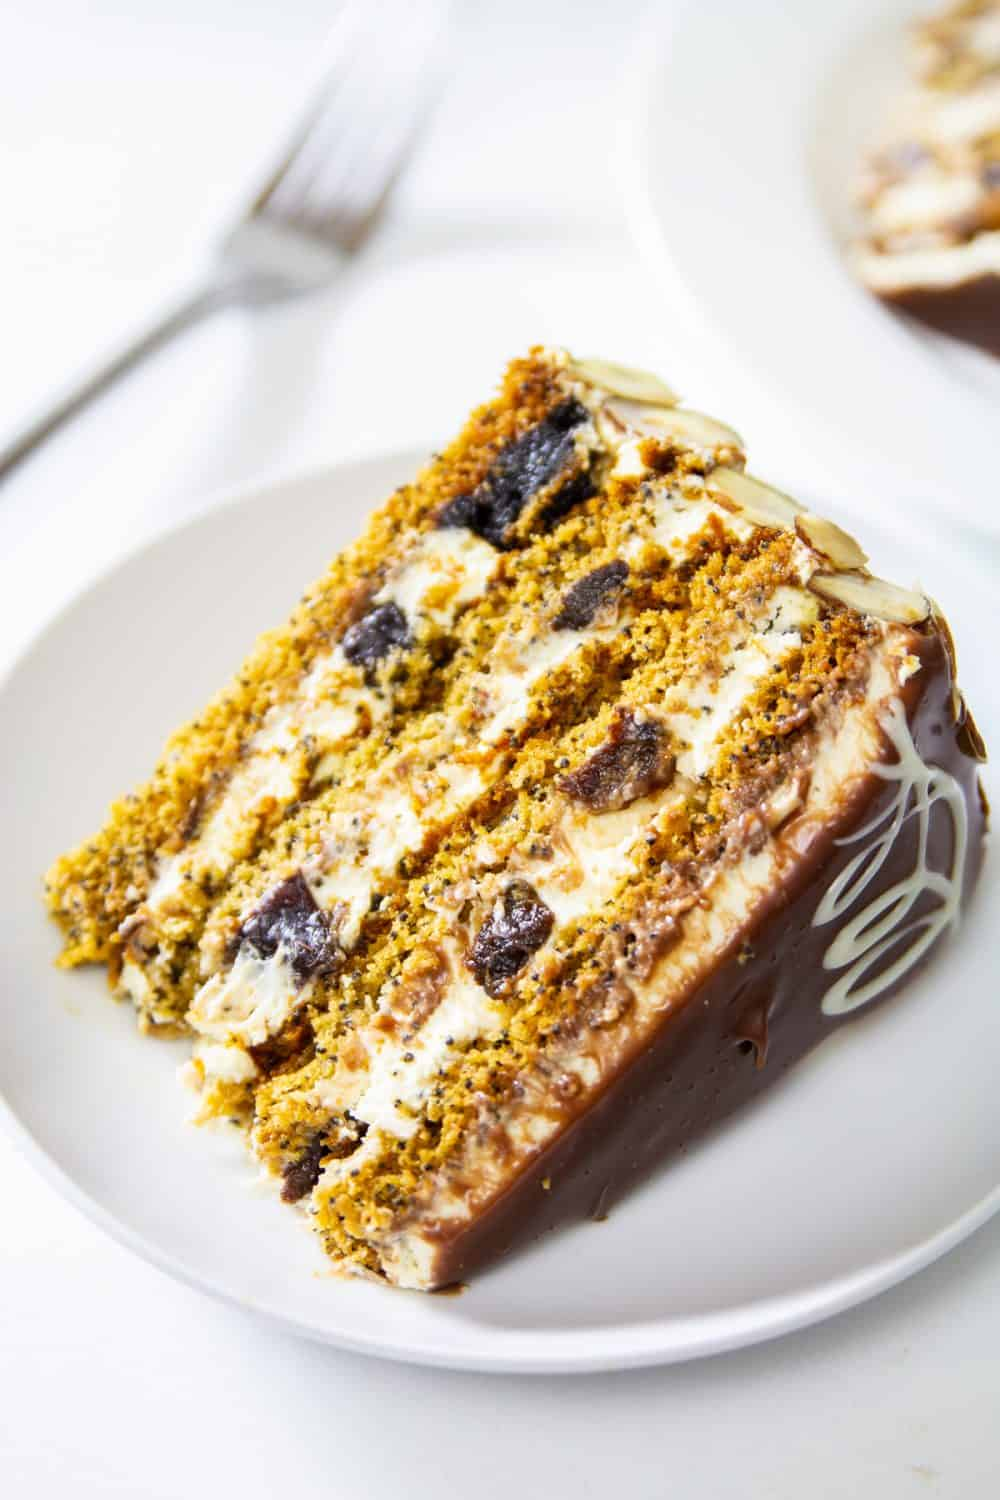 Close up of slice of Poppy Seed Honey Cake on a white plate with a fork and another slice on a white background